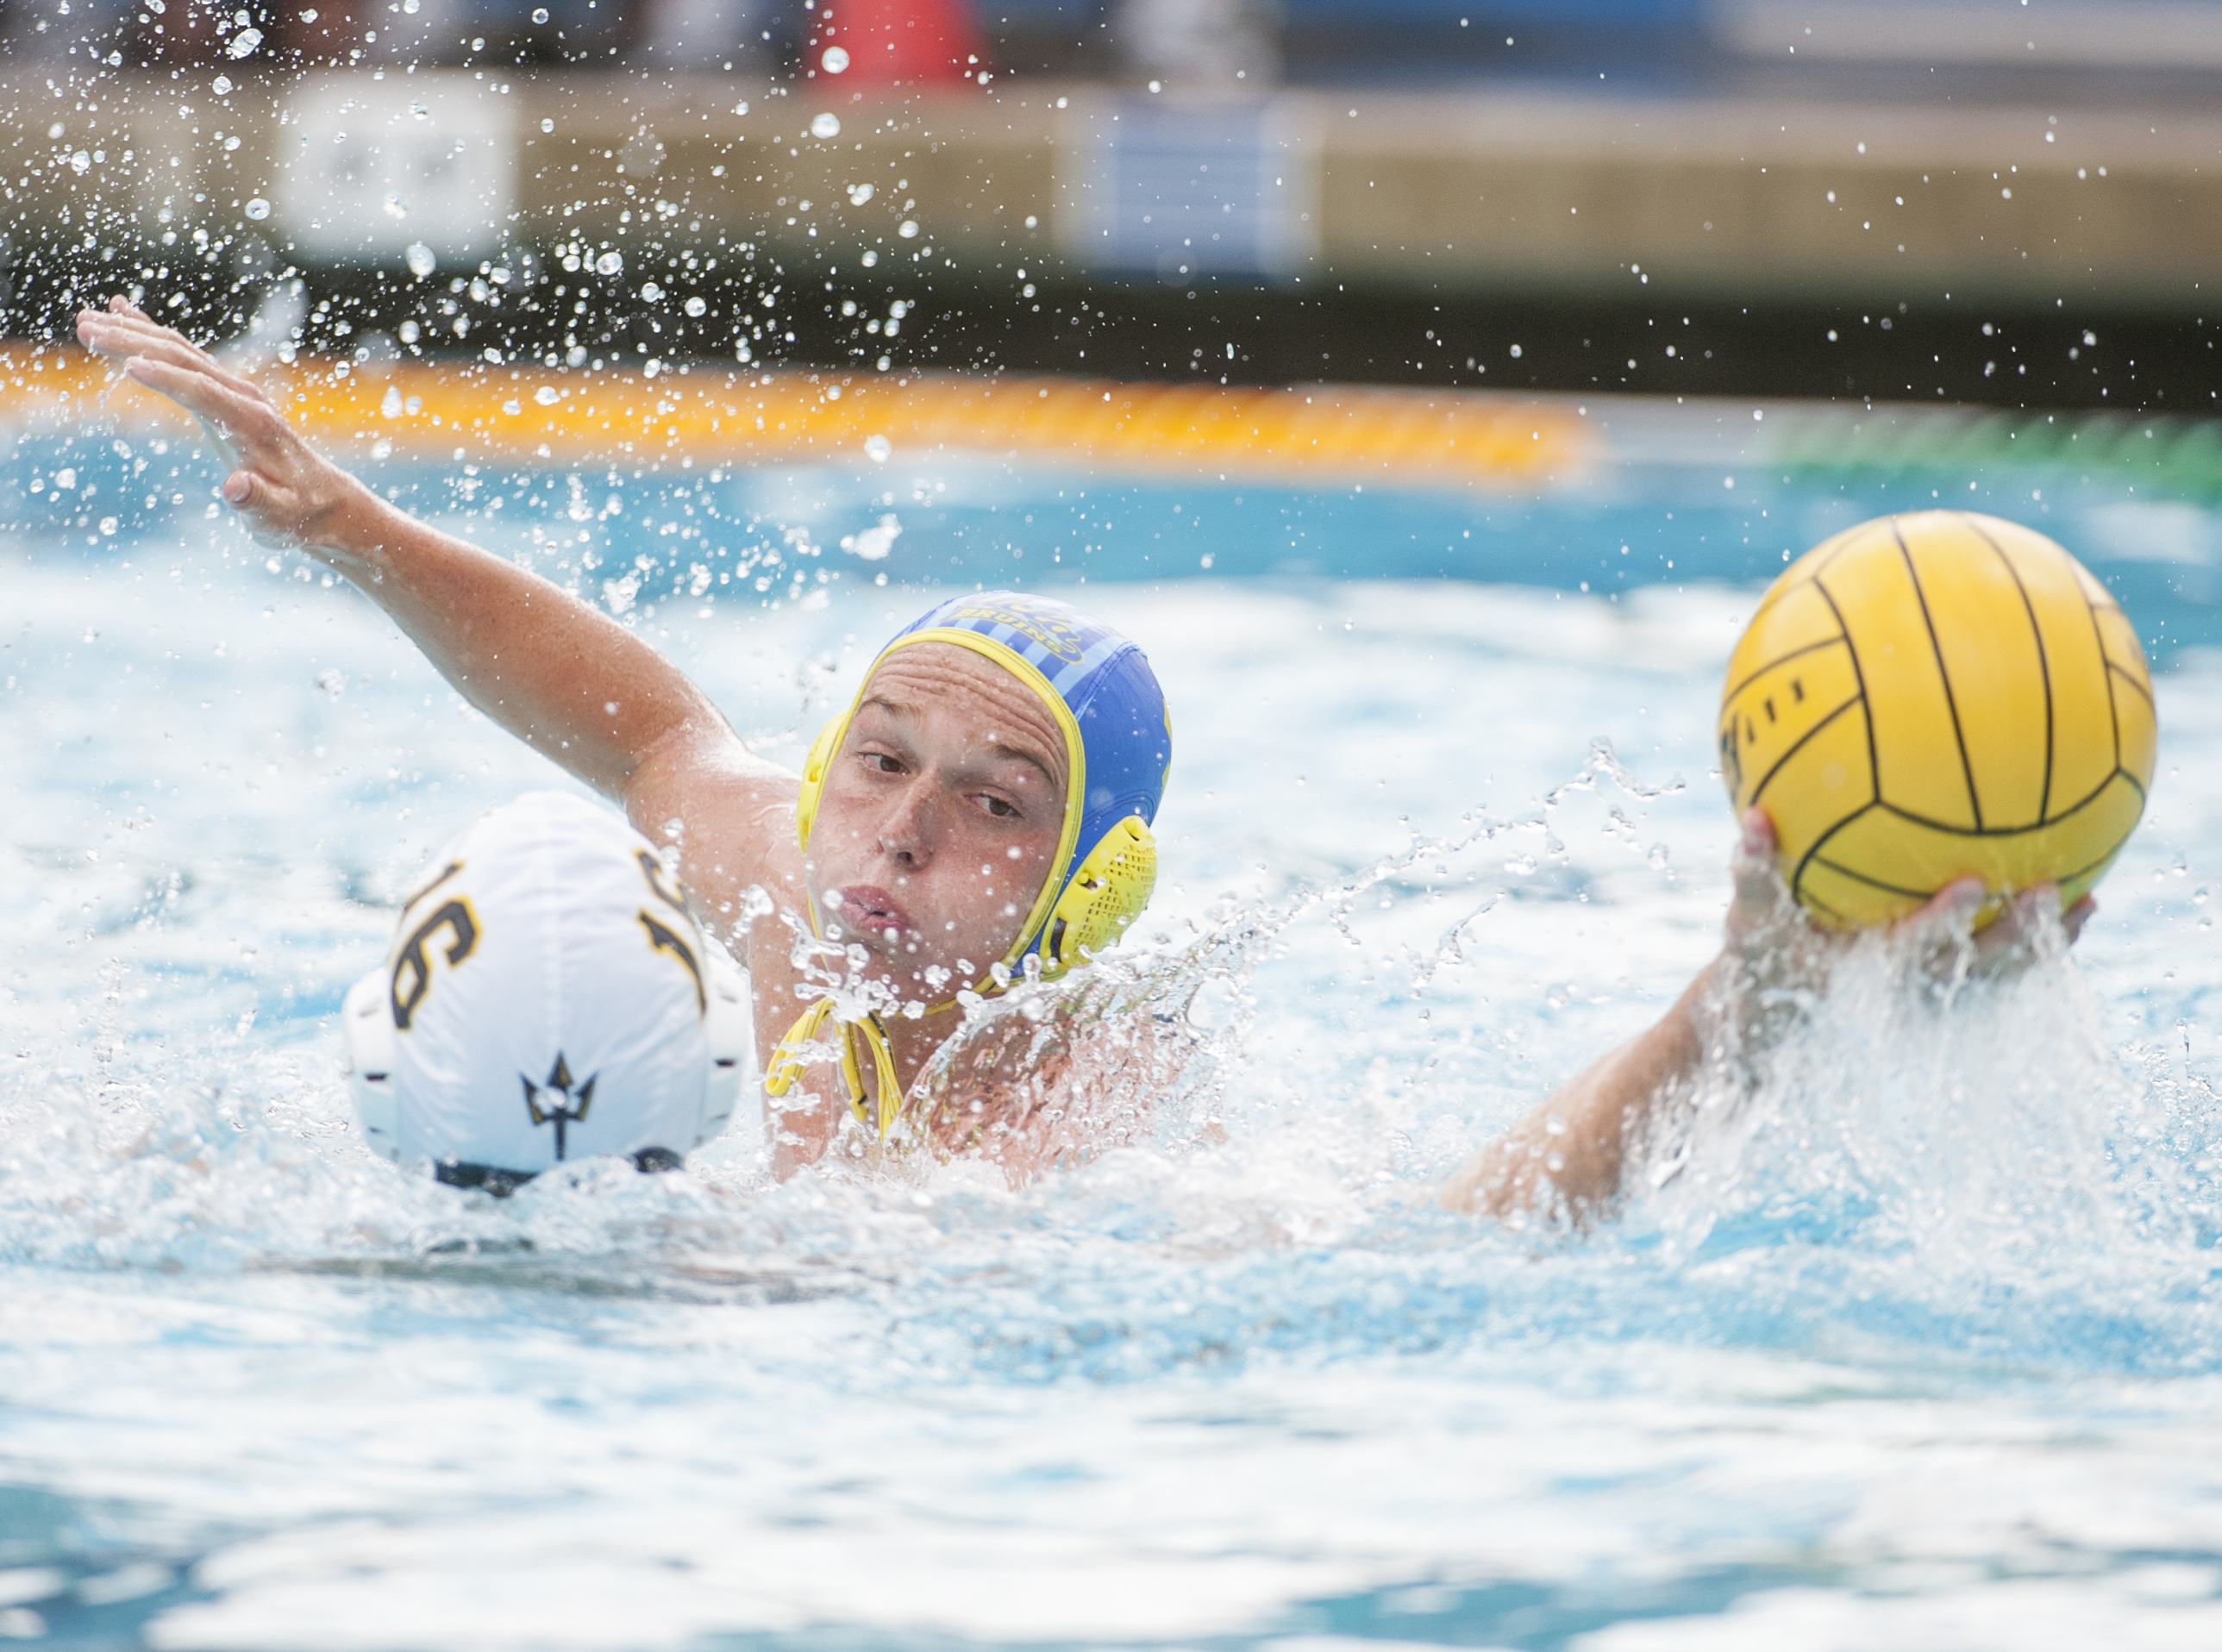 Sophomore attacker Paul Reynolds and the UCLA men's water polo team posted two wins over ranked opponents UCSB and UCSD this weekend.